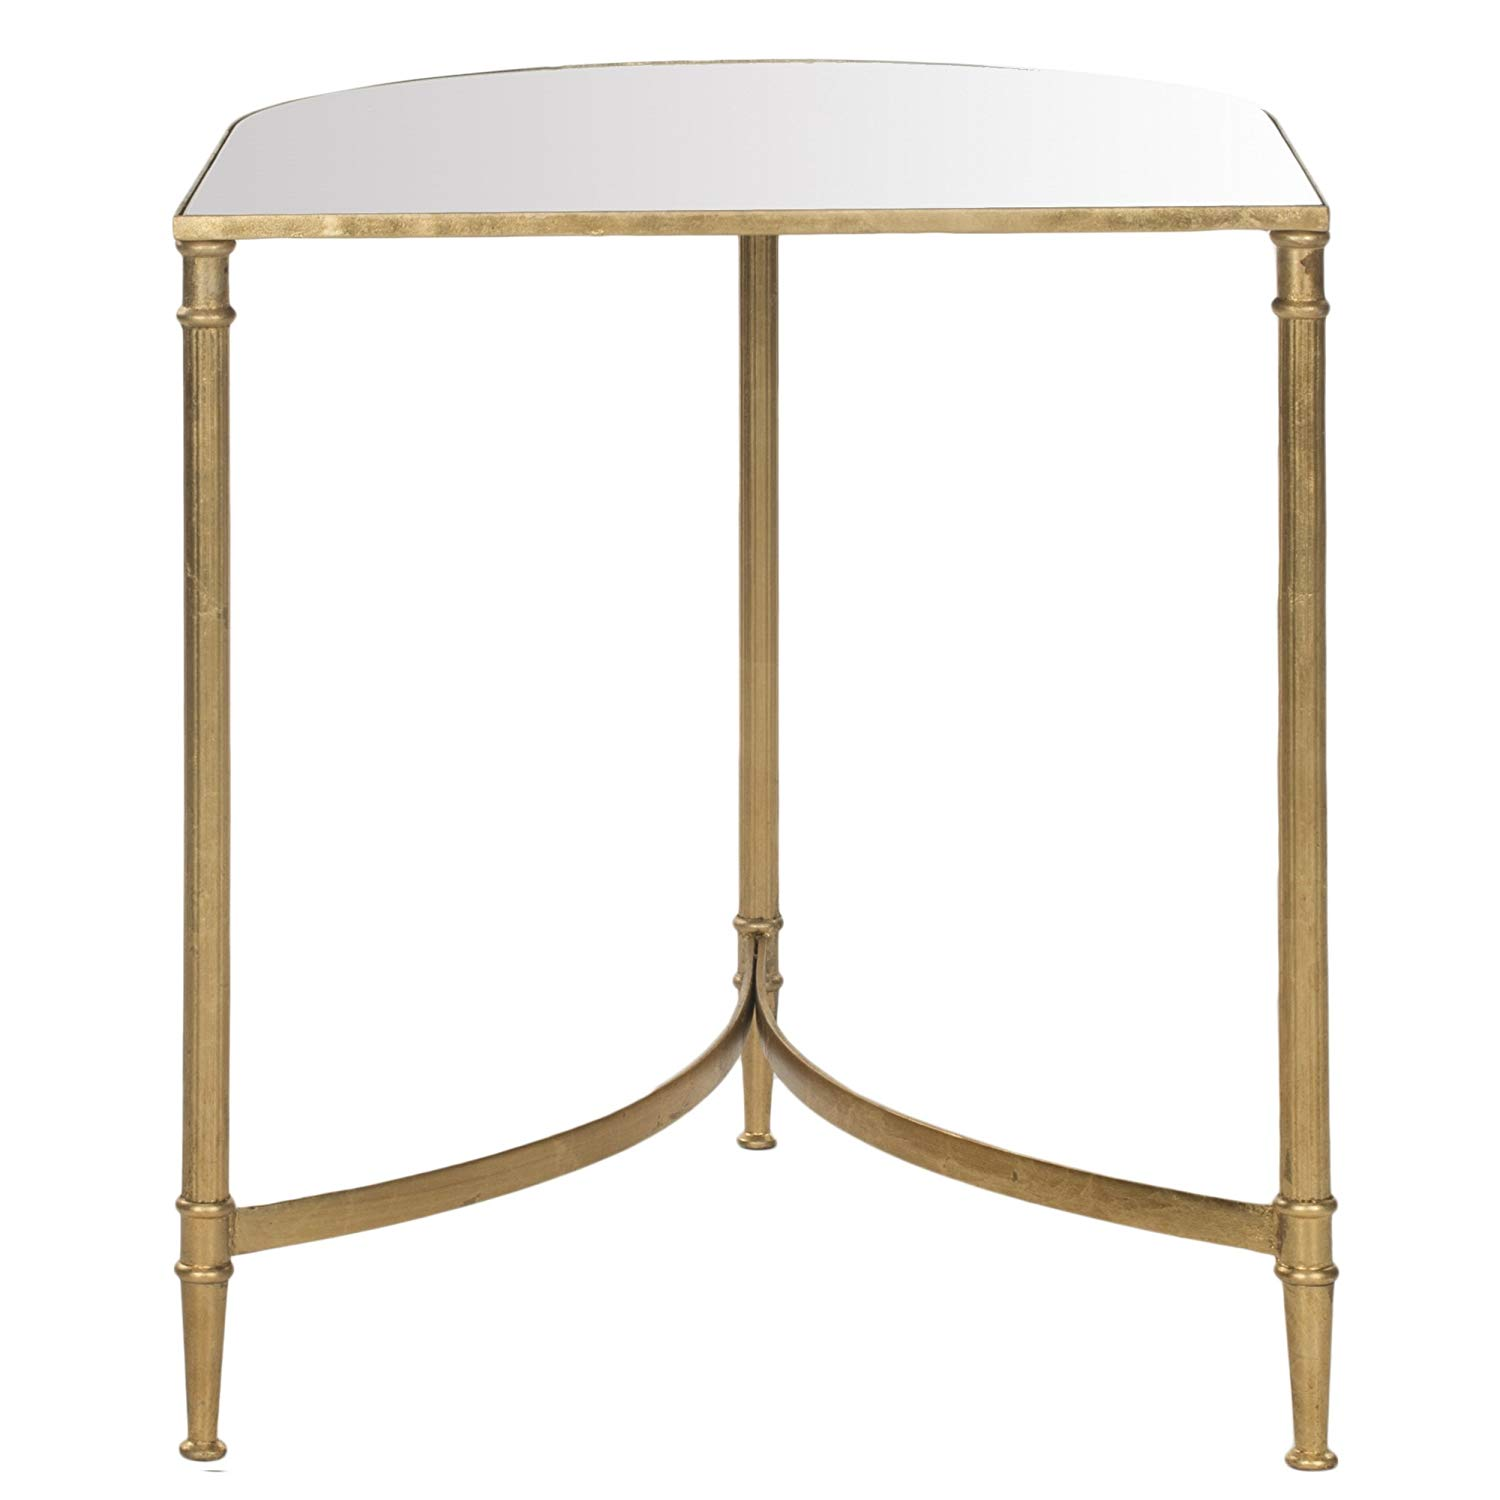 safavieh home collection nevin gold accent table kitchen dining entry for small spaces oak bar rustic metal and wood end tables beach chairs bunnings accents dishes mid century